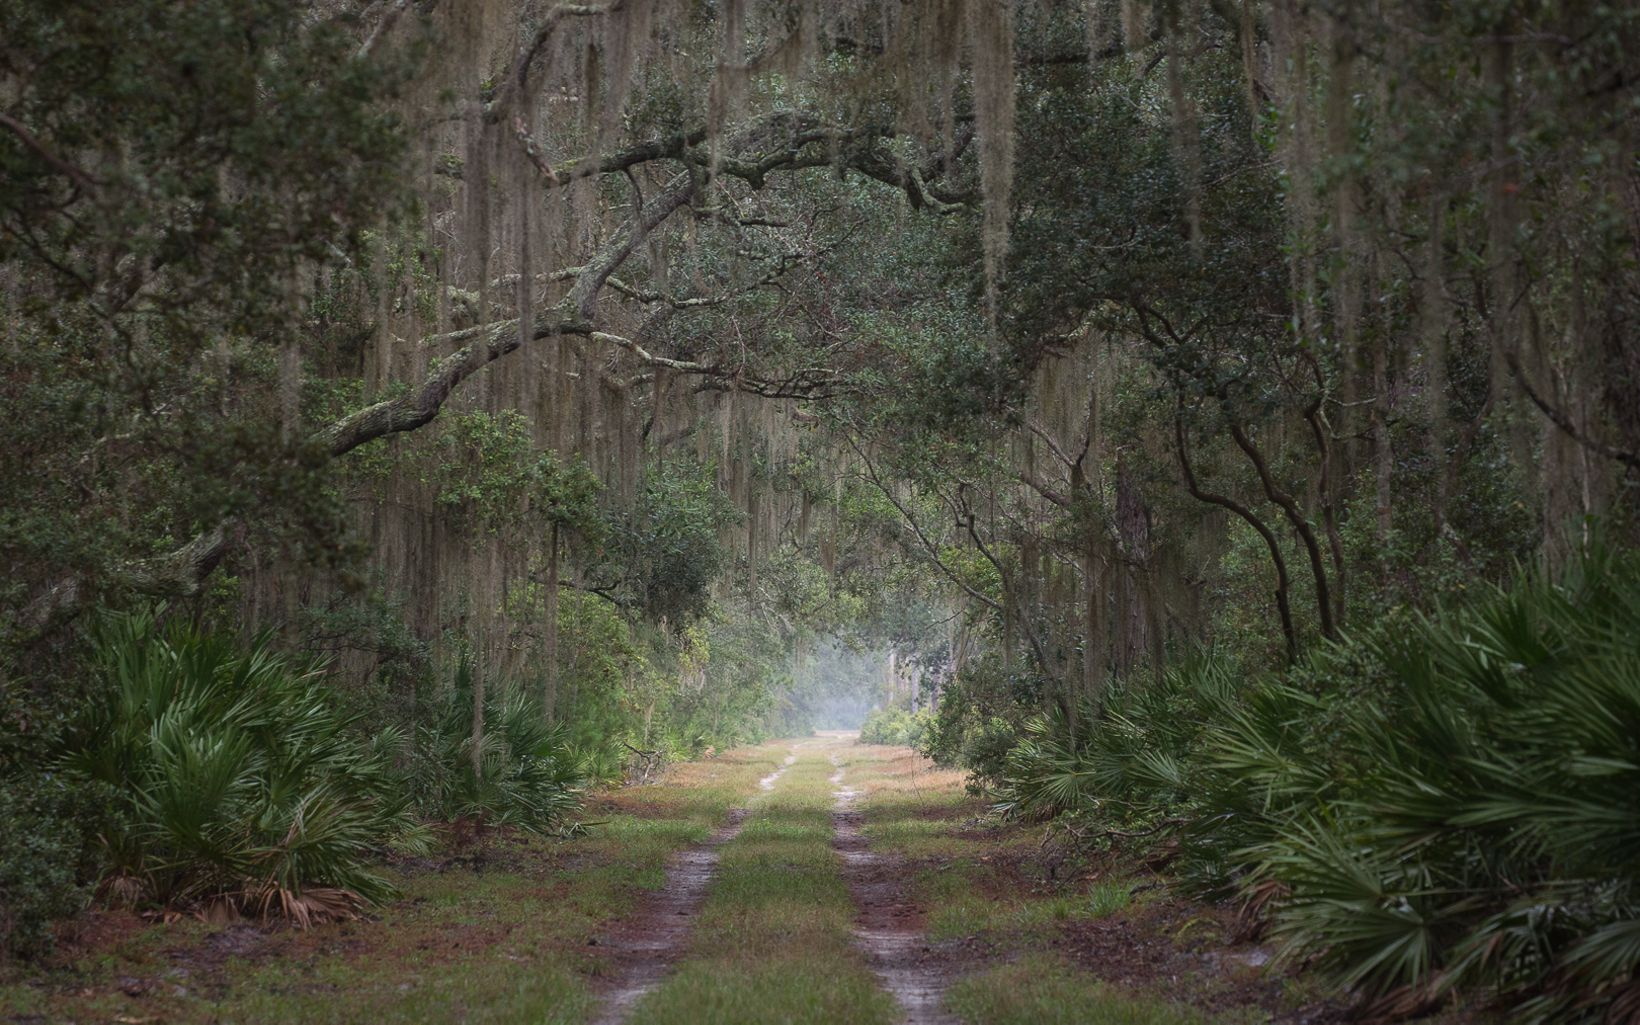 A trail with trees arching over it and Spanish moss hanging from the trees.